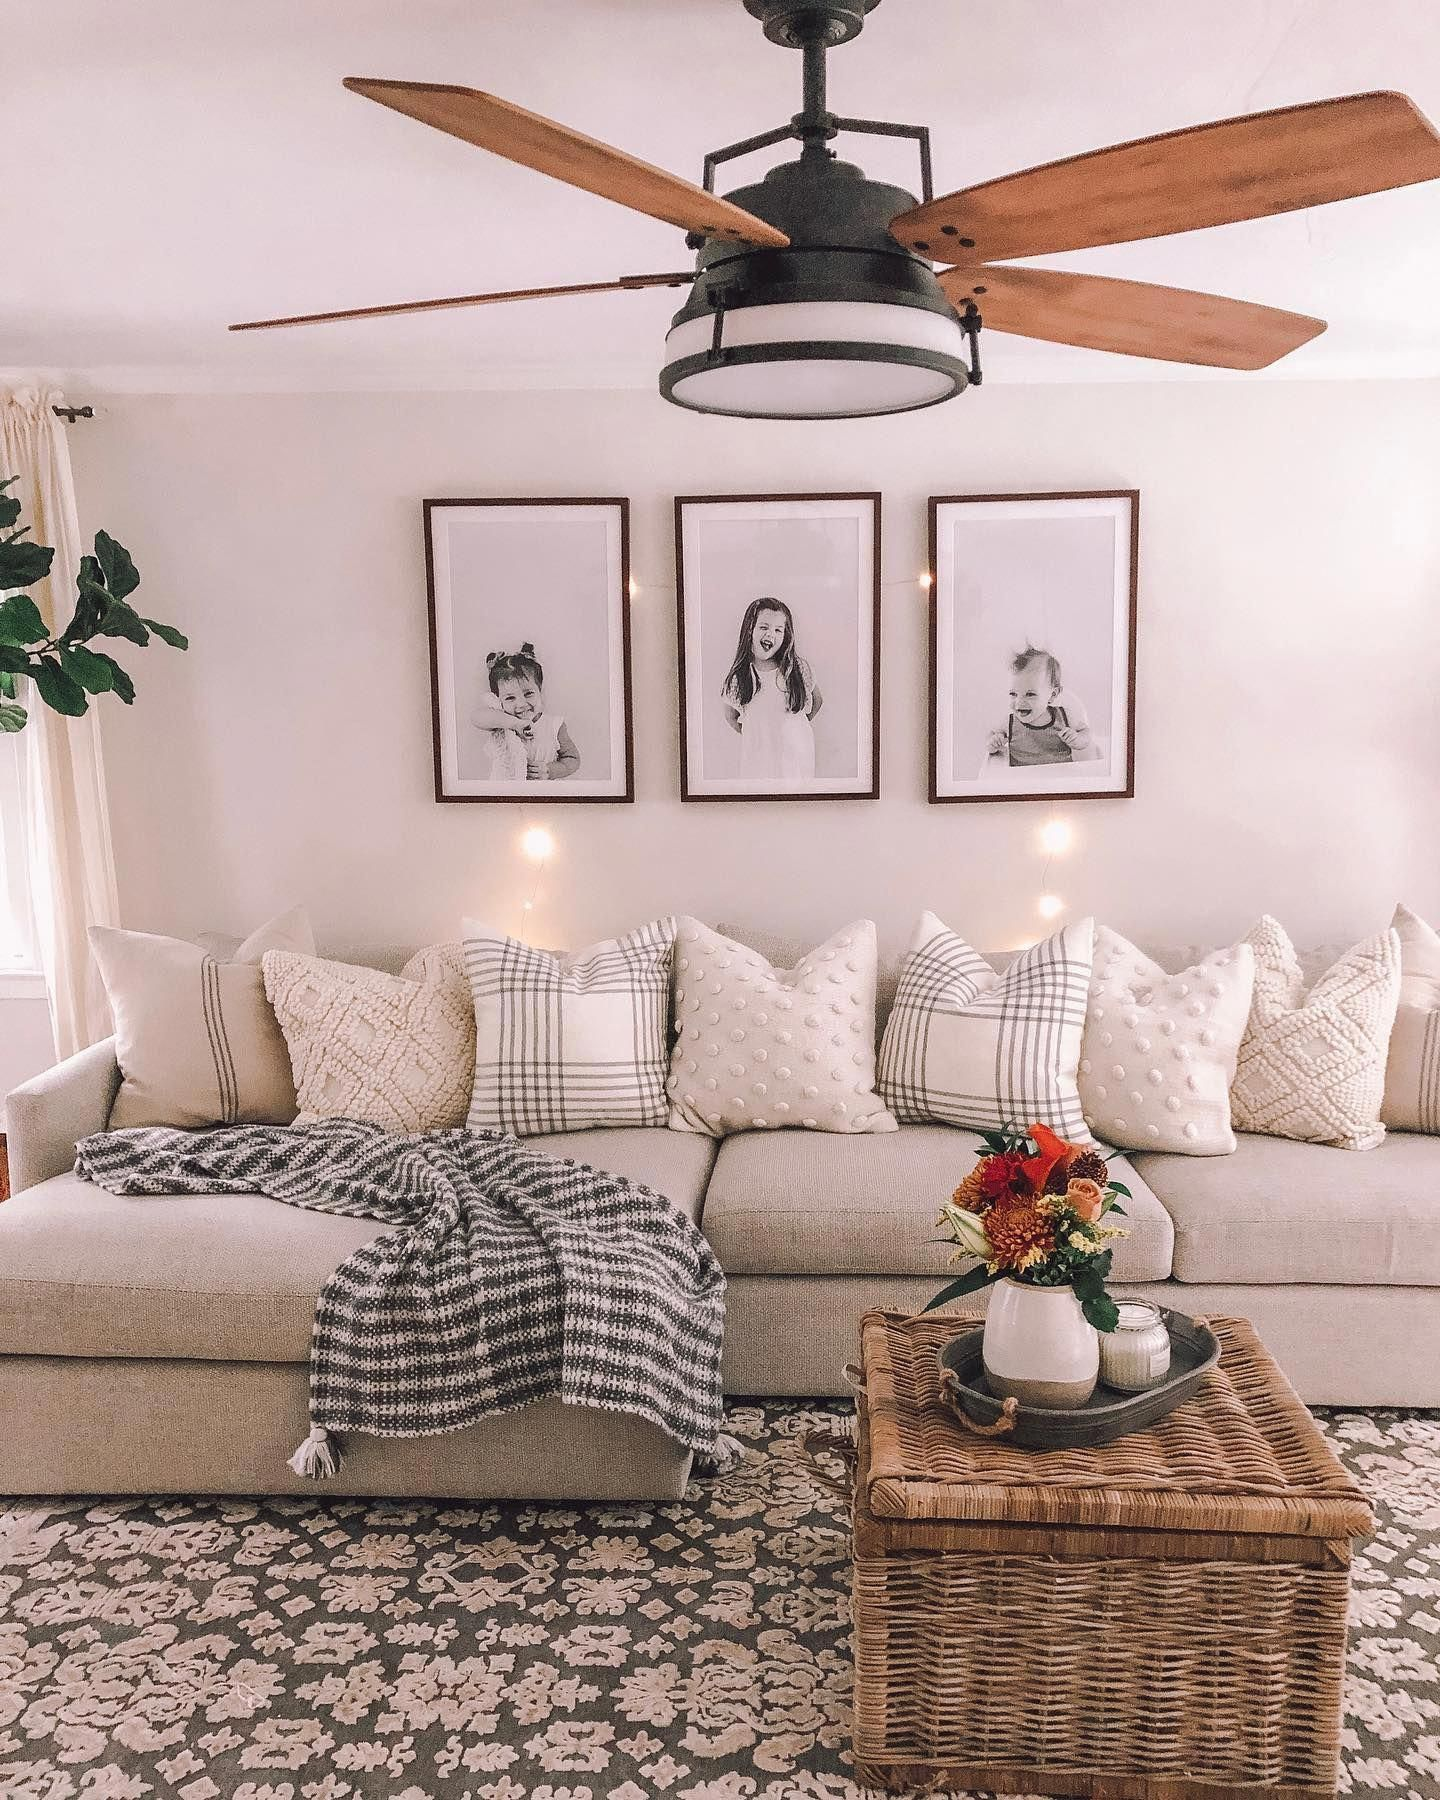 Sofa And Coffee Table The Winning Combination In 2020 With Images Home Decor Family Room Design Room Decor